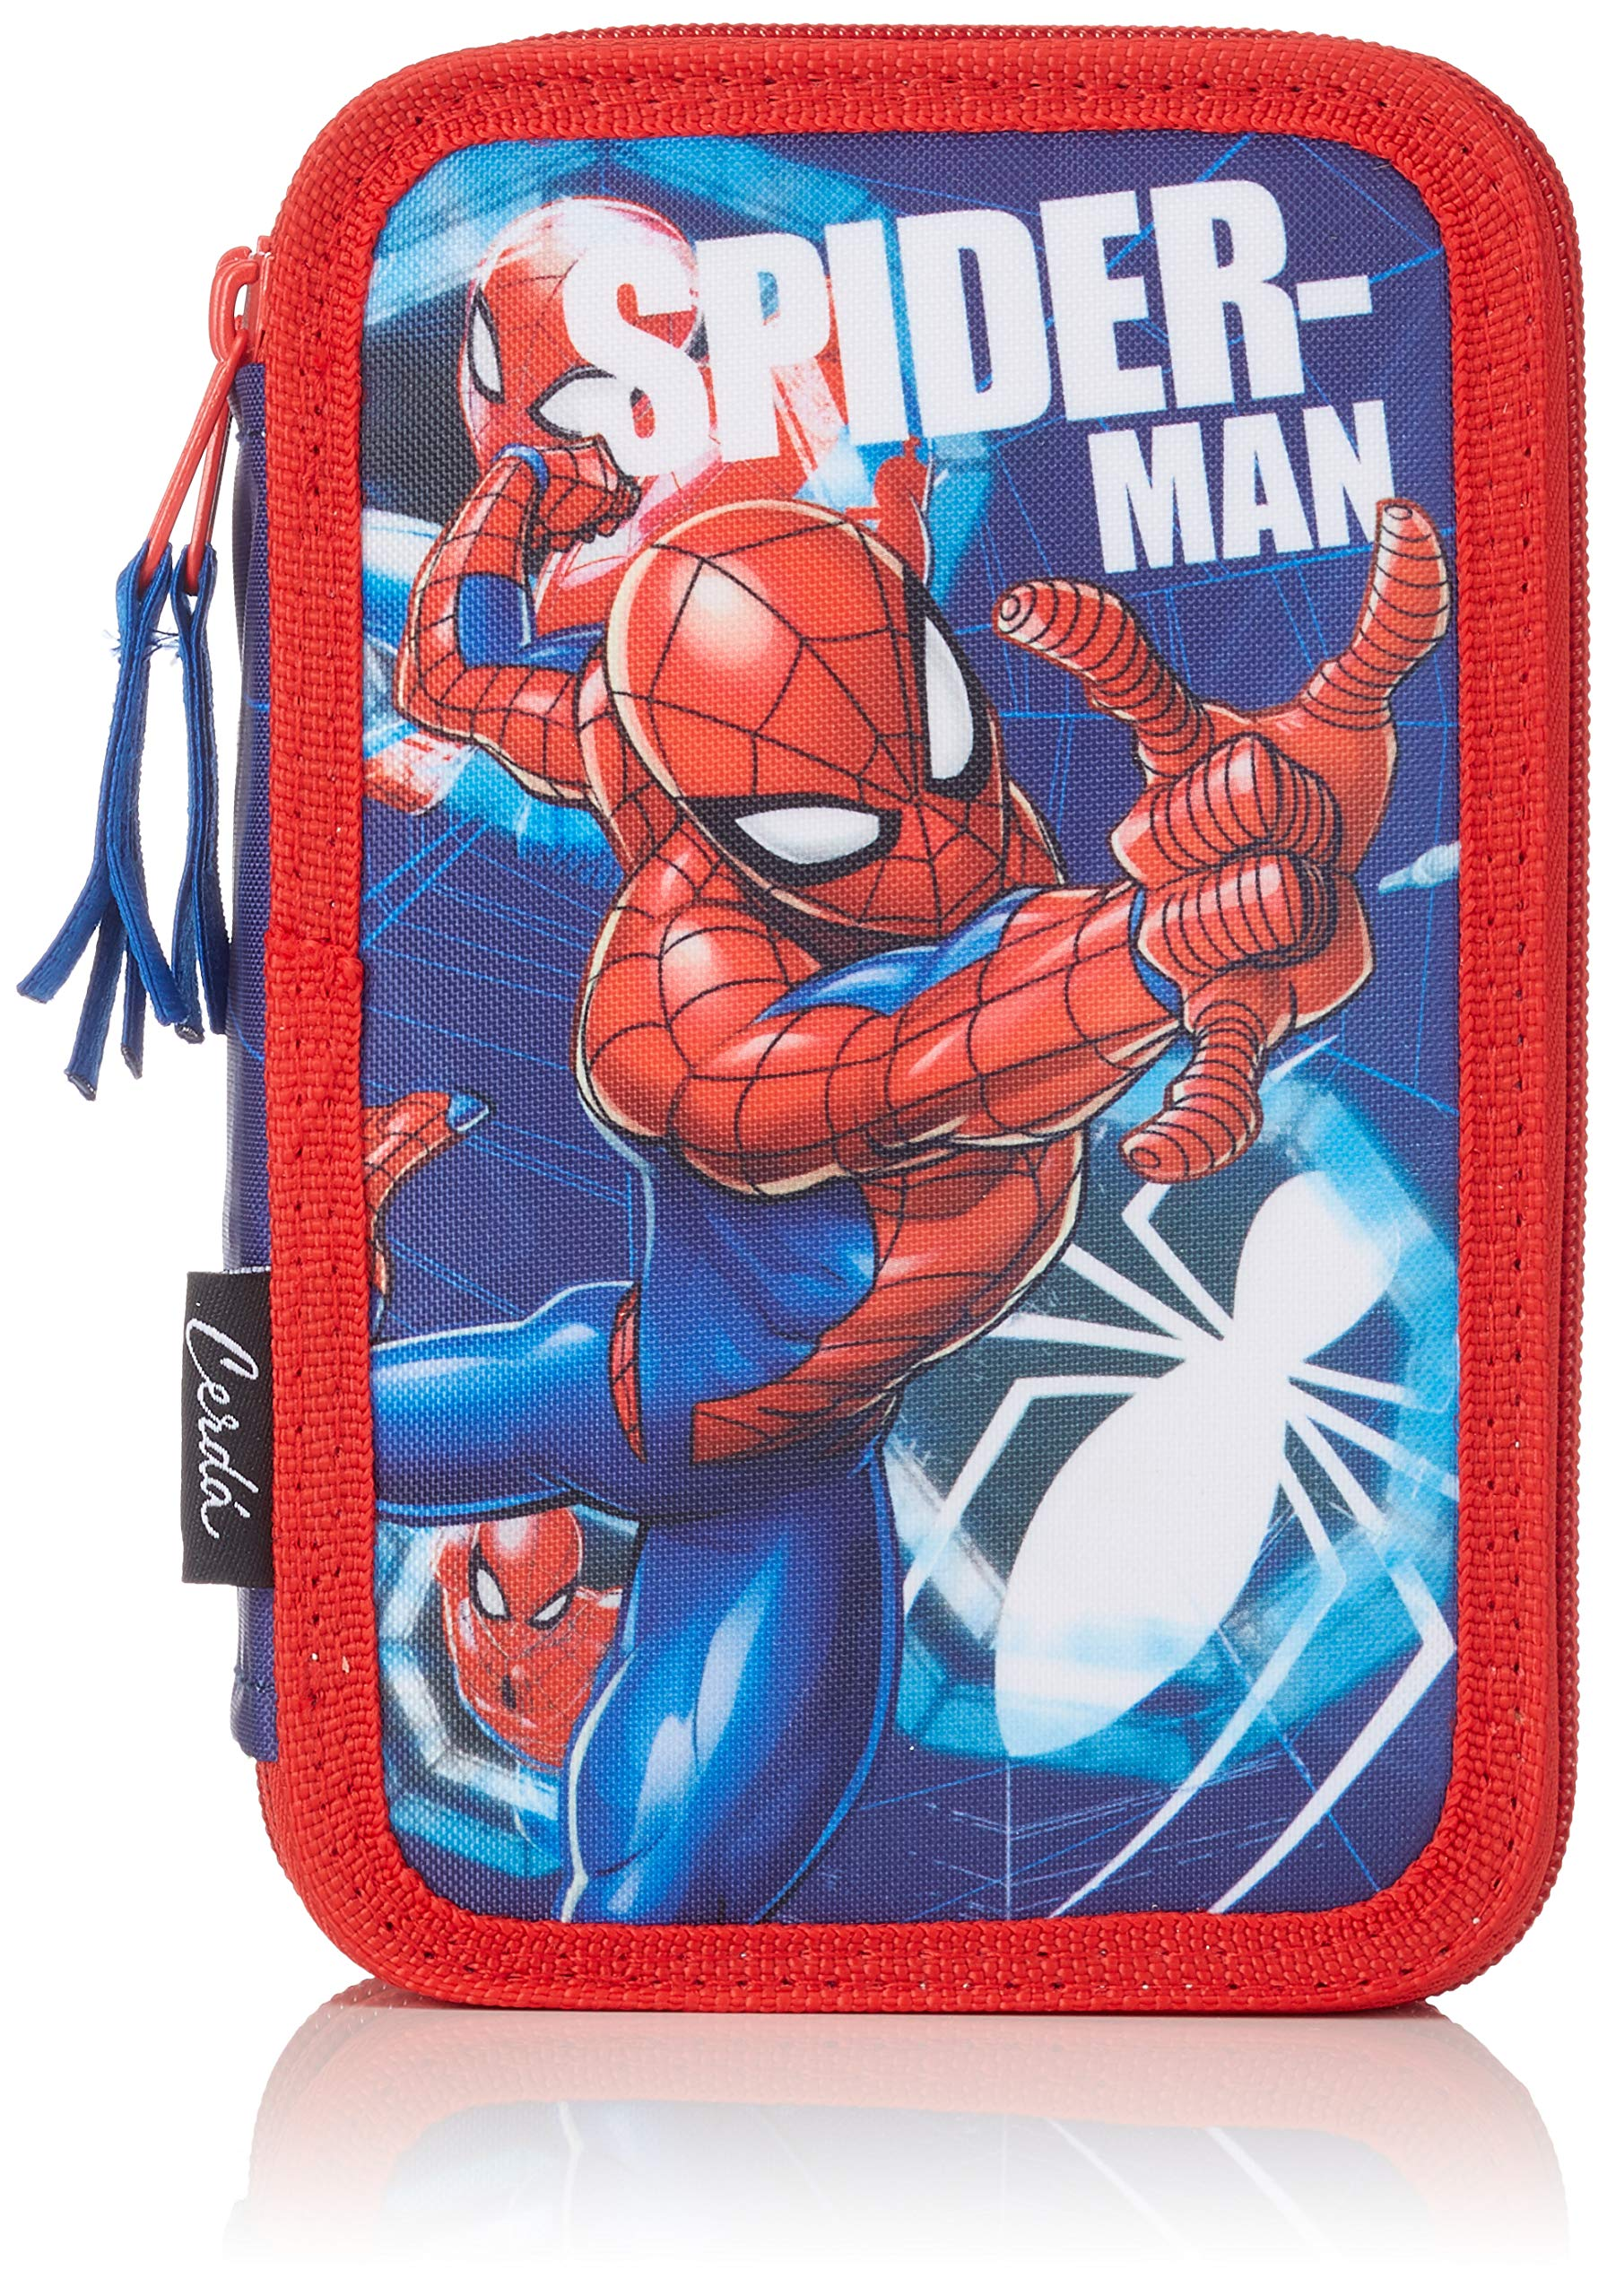 Spider-Man-2700000237 Spiderman Plumier, Multicolor, 19 cm (Artesanía Cerdá CD-27-0237)